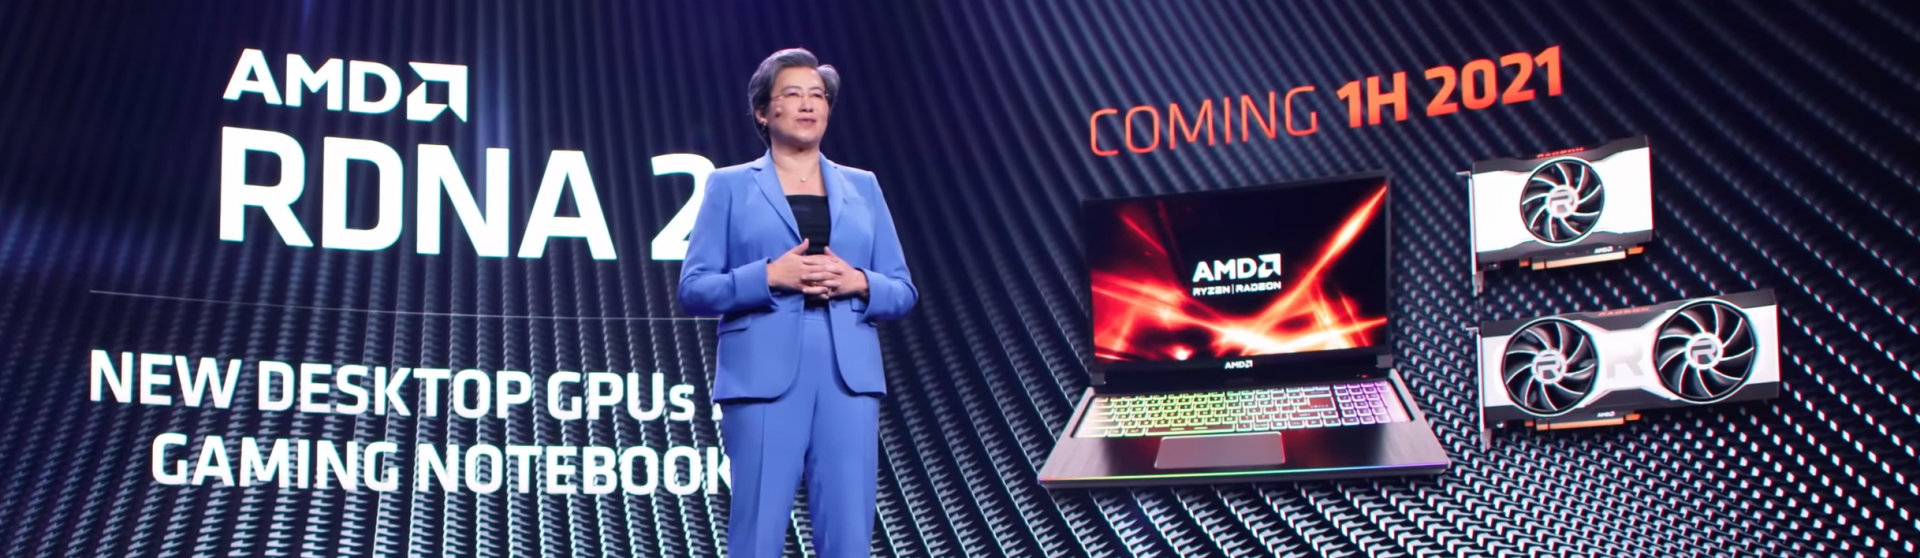 AMD Radeon RX 6600 And RX 6600XT GPUs Listed In New Update, Launch Imminent? News